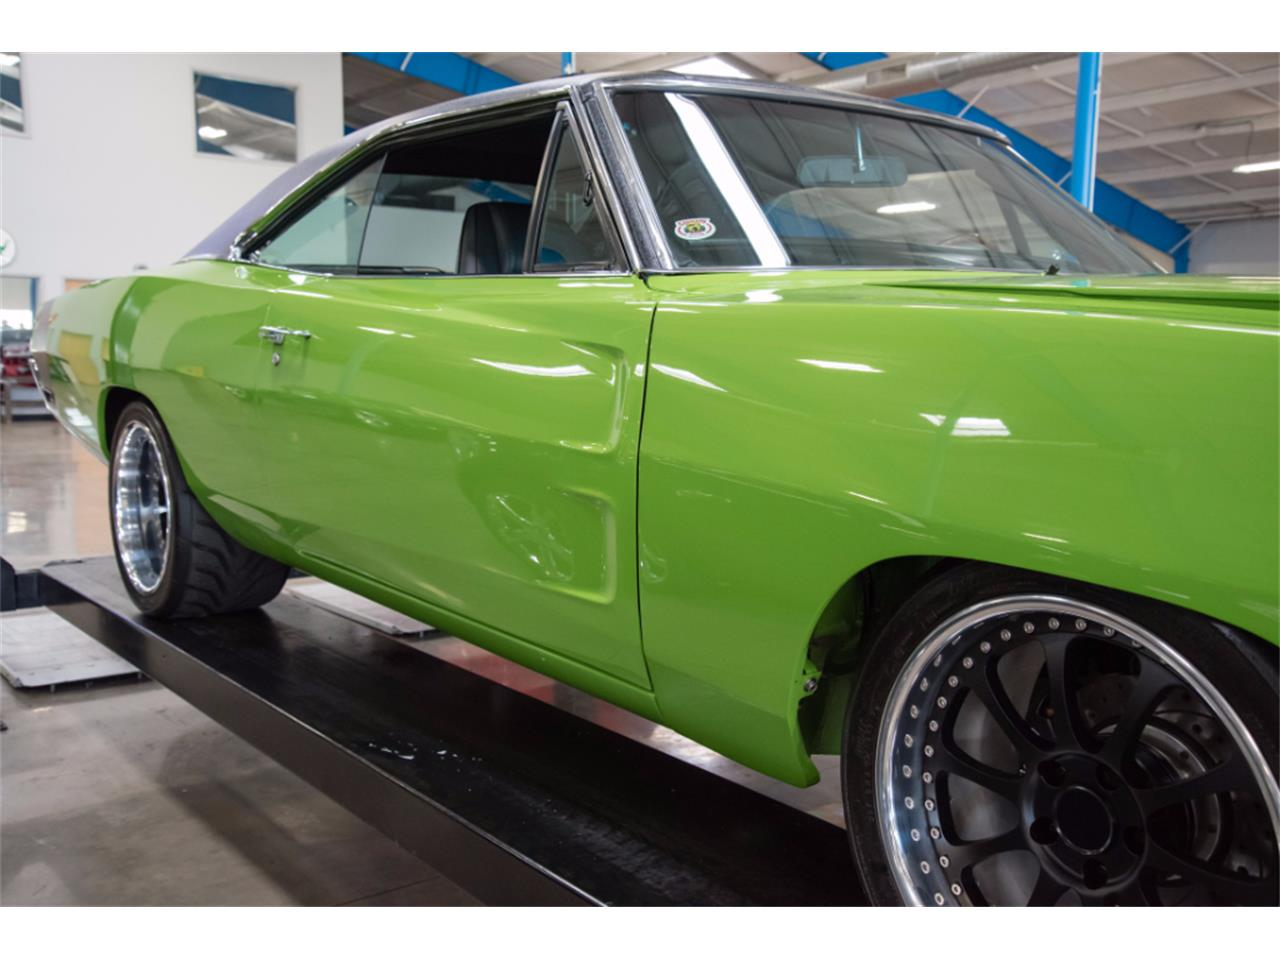 Large Picture of Classic '70 Dodge Charger - $135,000.00 - MB1Z